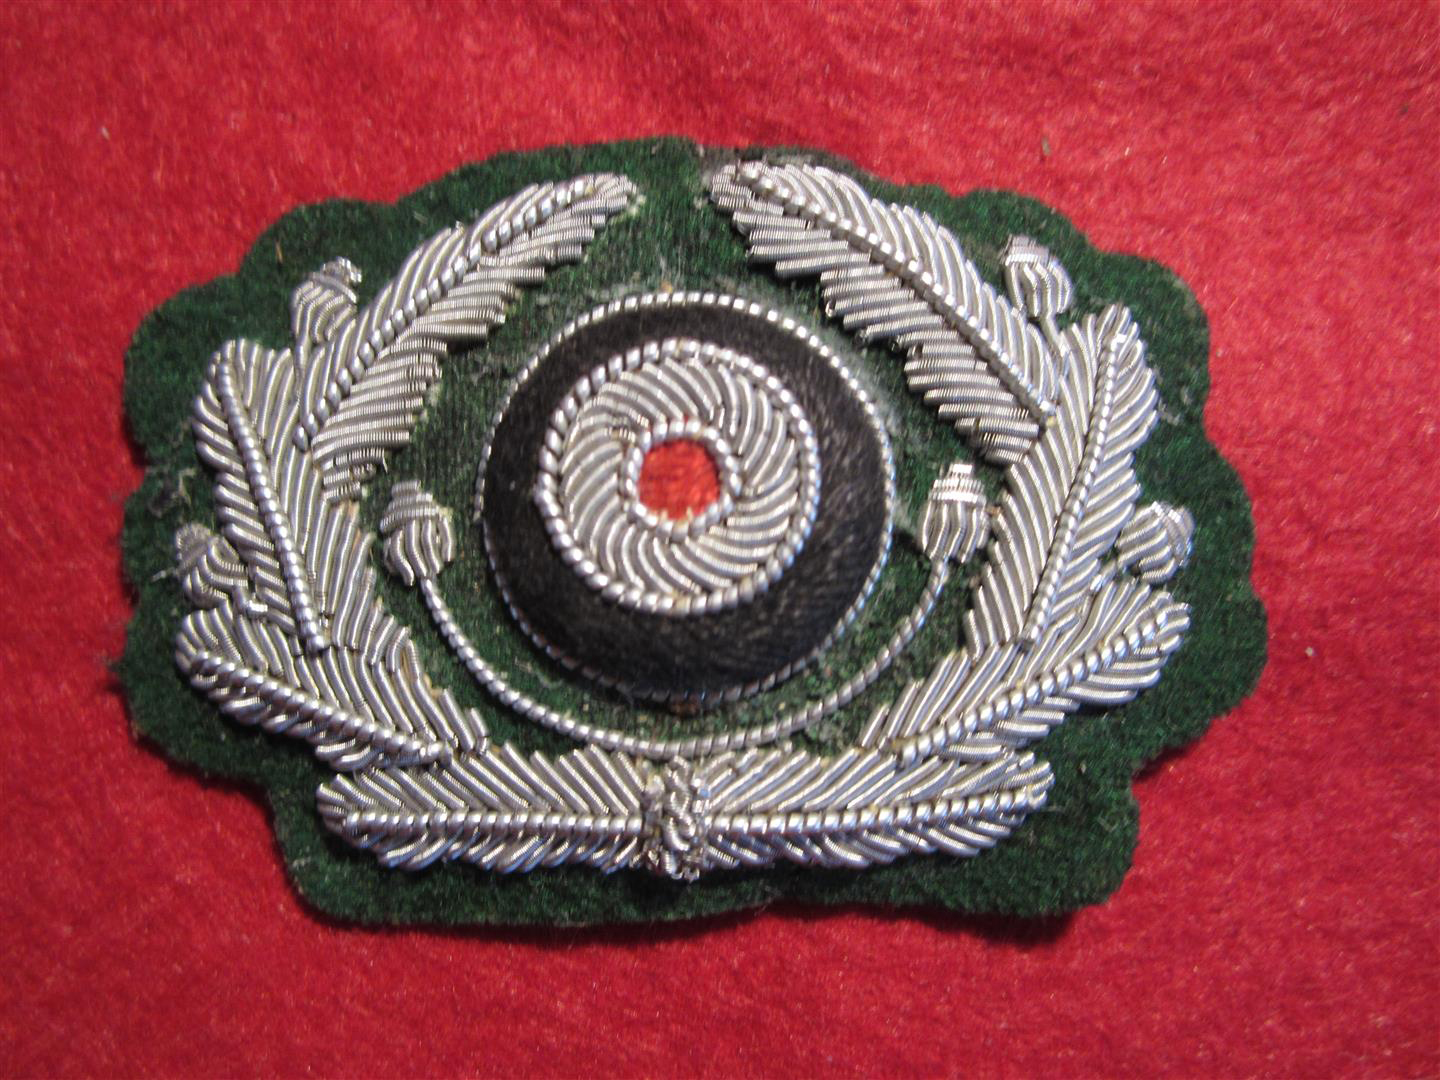 WW2 German WH Officer's Cap Wreath